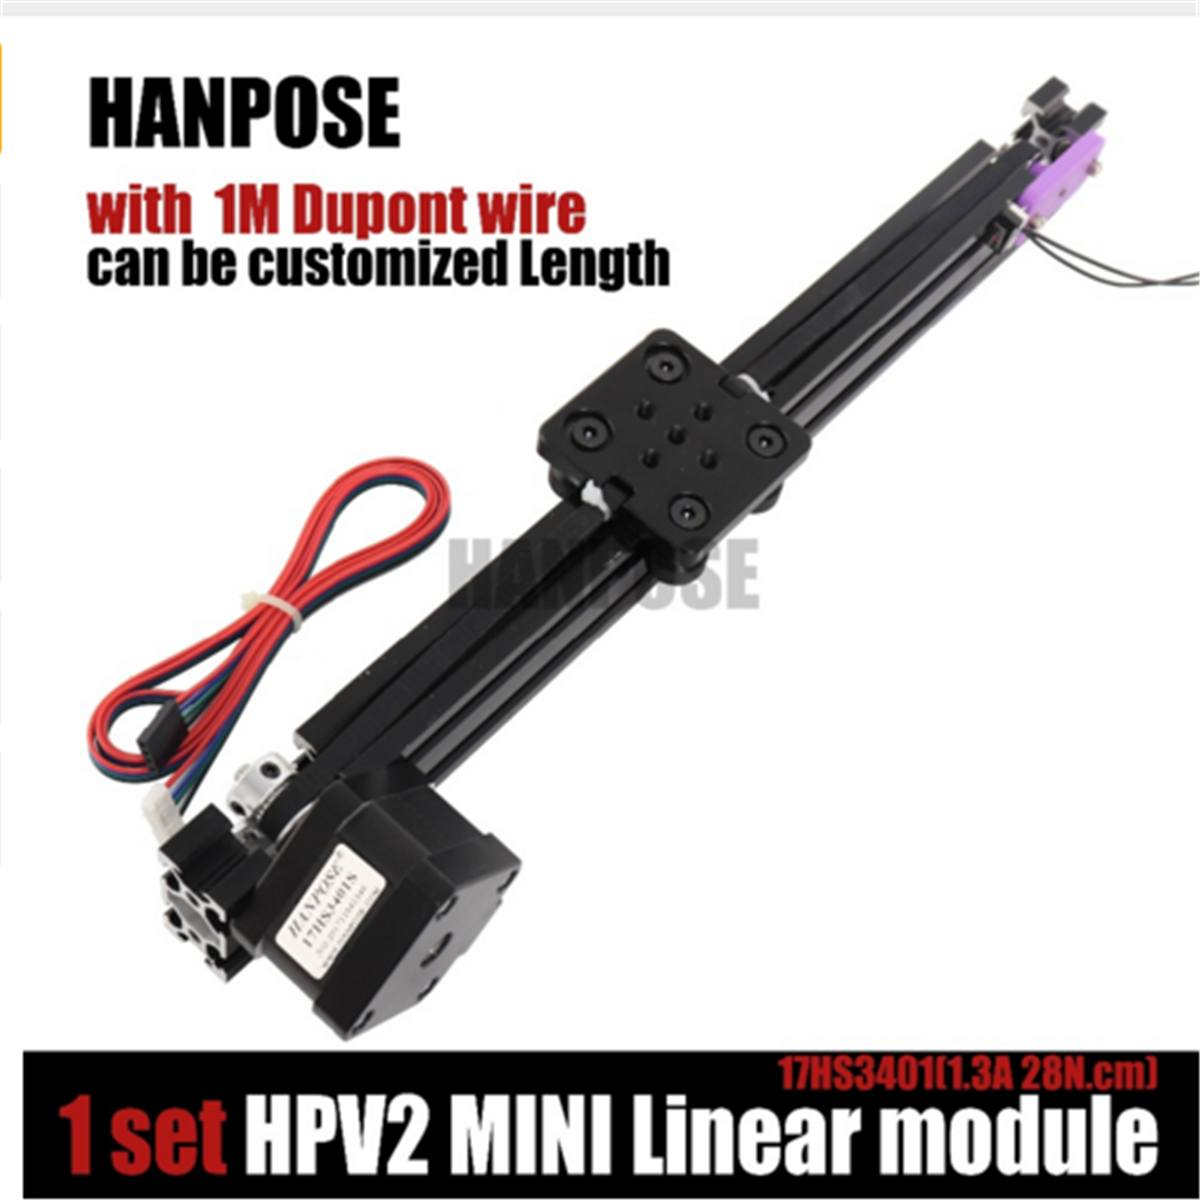 HPV2 Linear Guide Set Openbuilds V Linear Actuator Effective Travel 100-400mm Linear Module with 17HS3401S Stepper MotorHPV2 Linear Guide Set Openbuilds V Linear Actuator Effective Travel 100-400mm Linear Module with 17HS3401S Stepper Motor